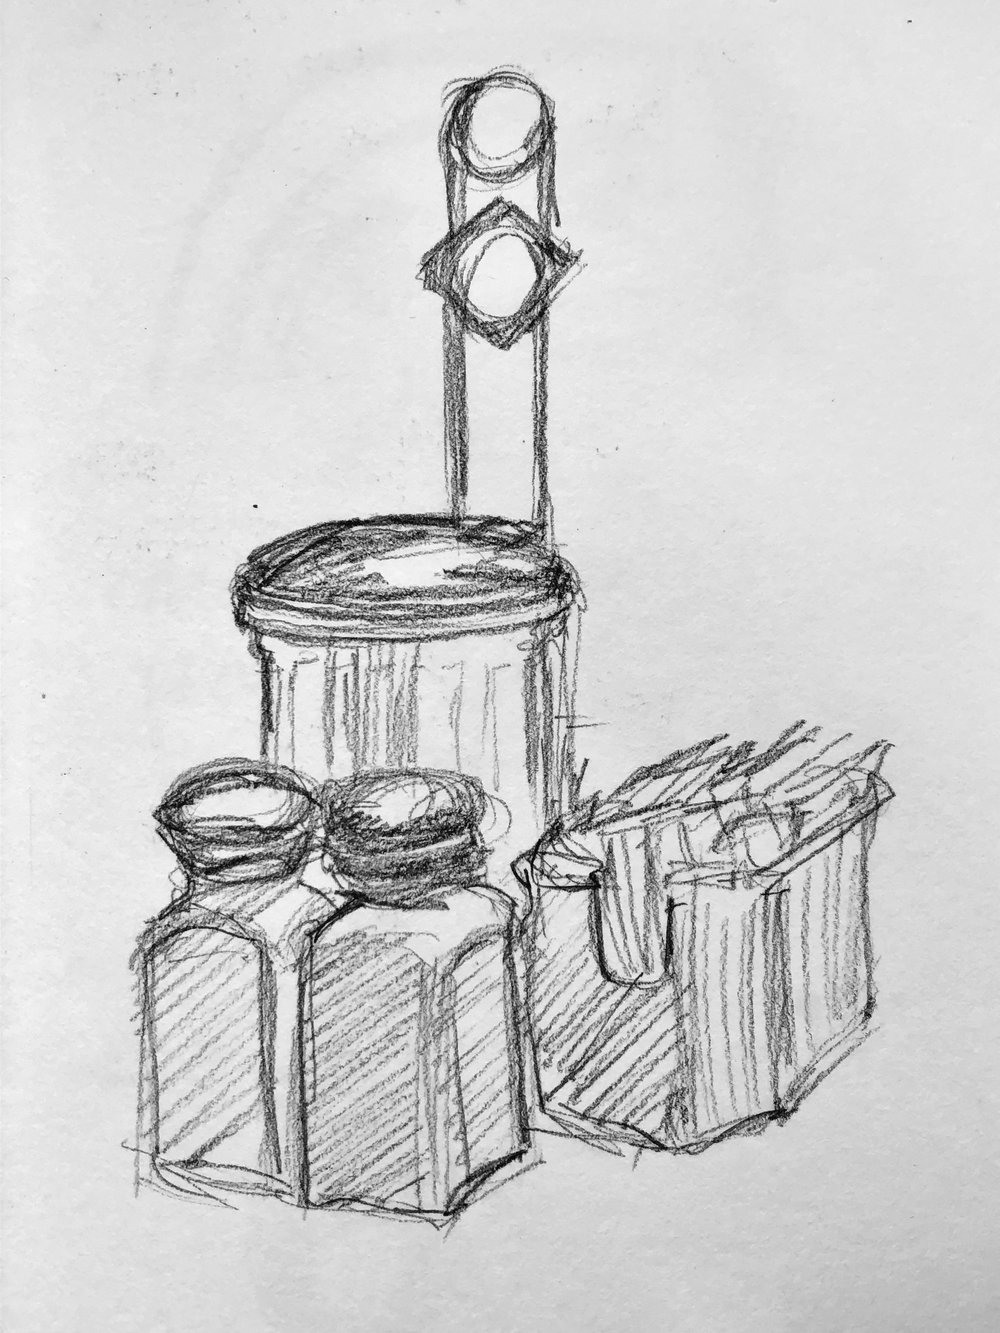 I have more condiment caddy sketches…